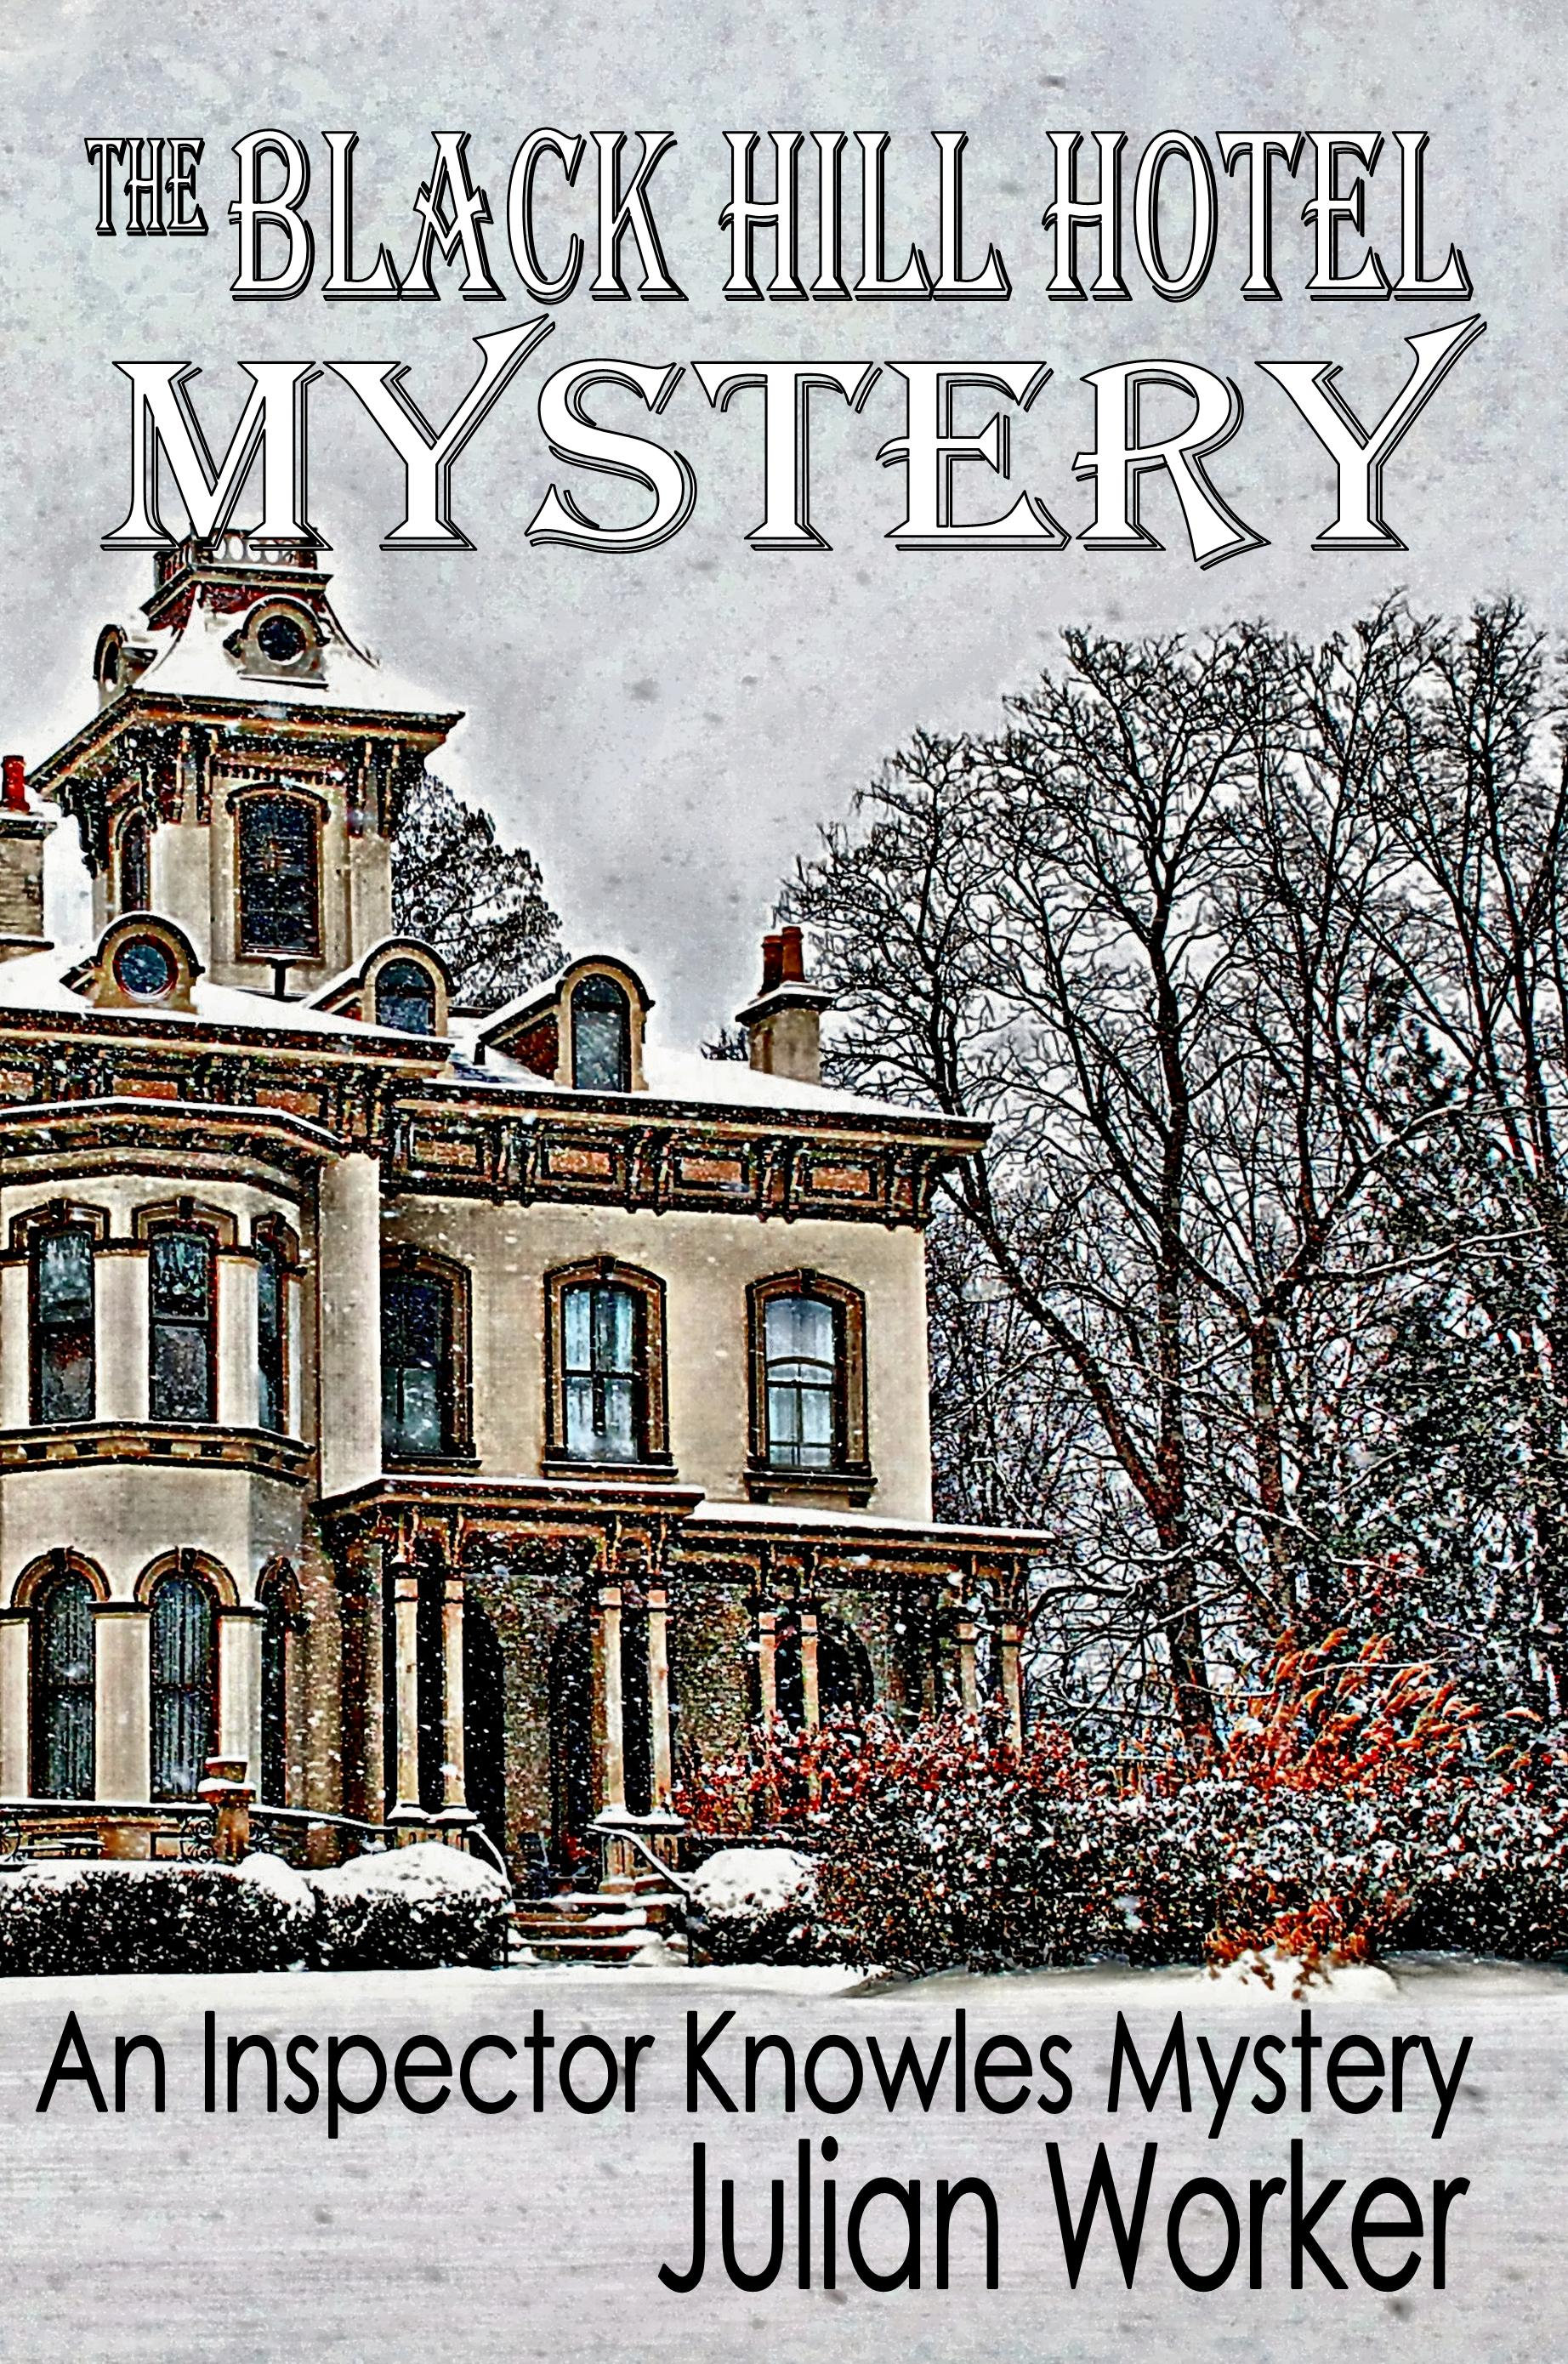 The Black Hill Hotel Mystery – 40